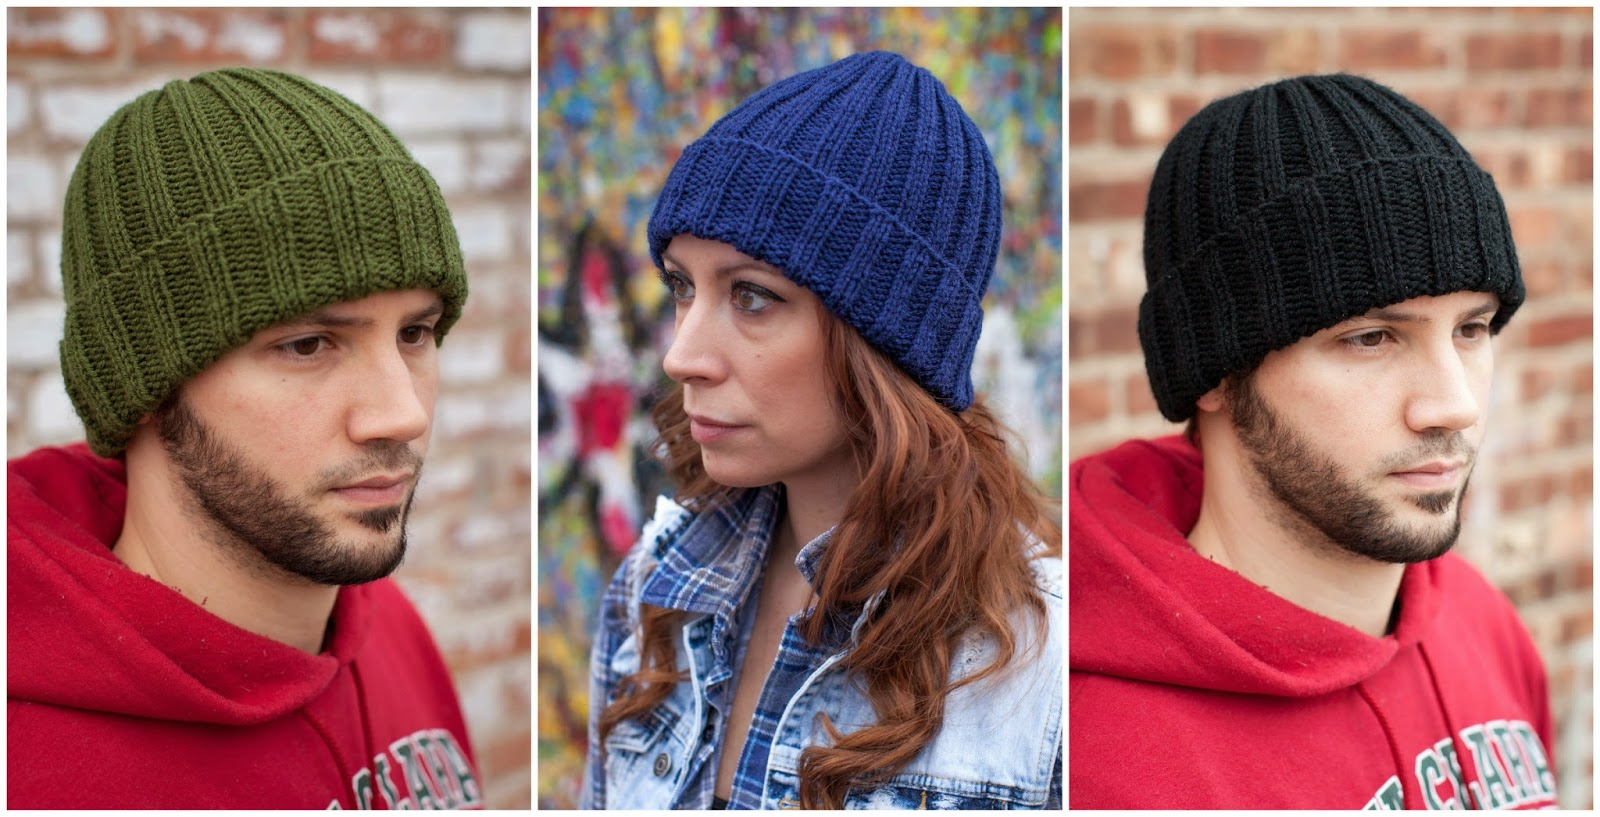 Flat Knit Hats For Adults